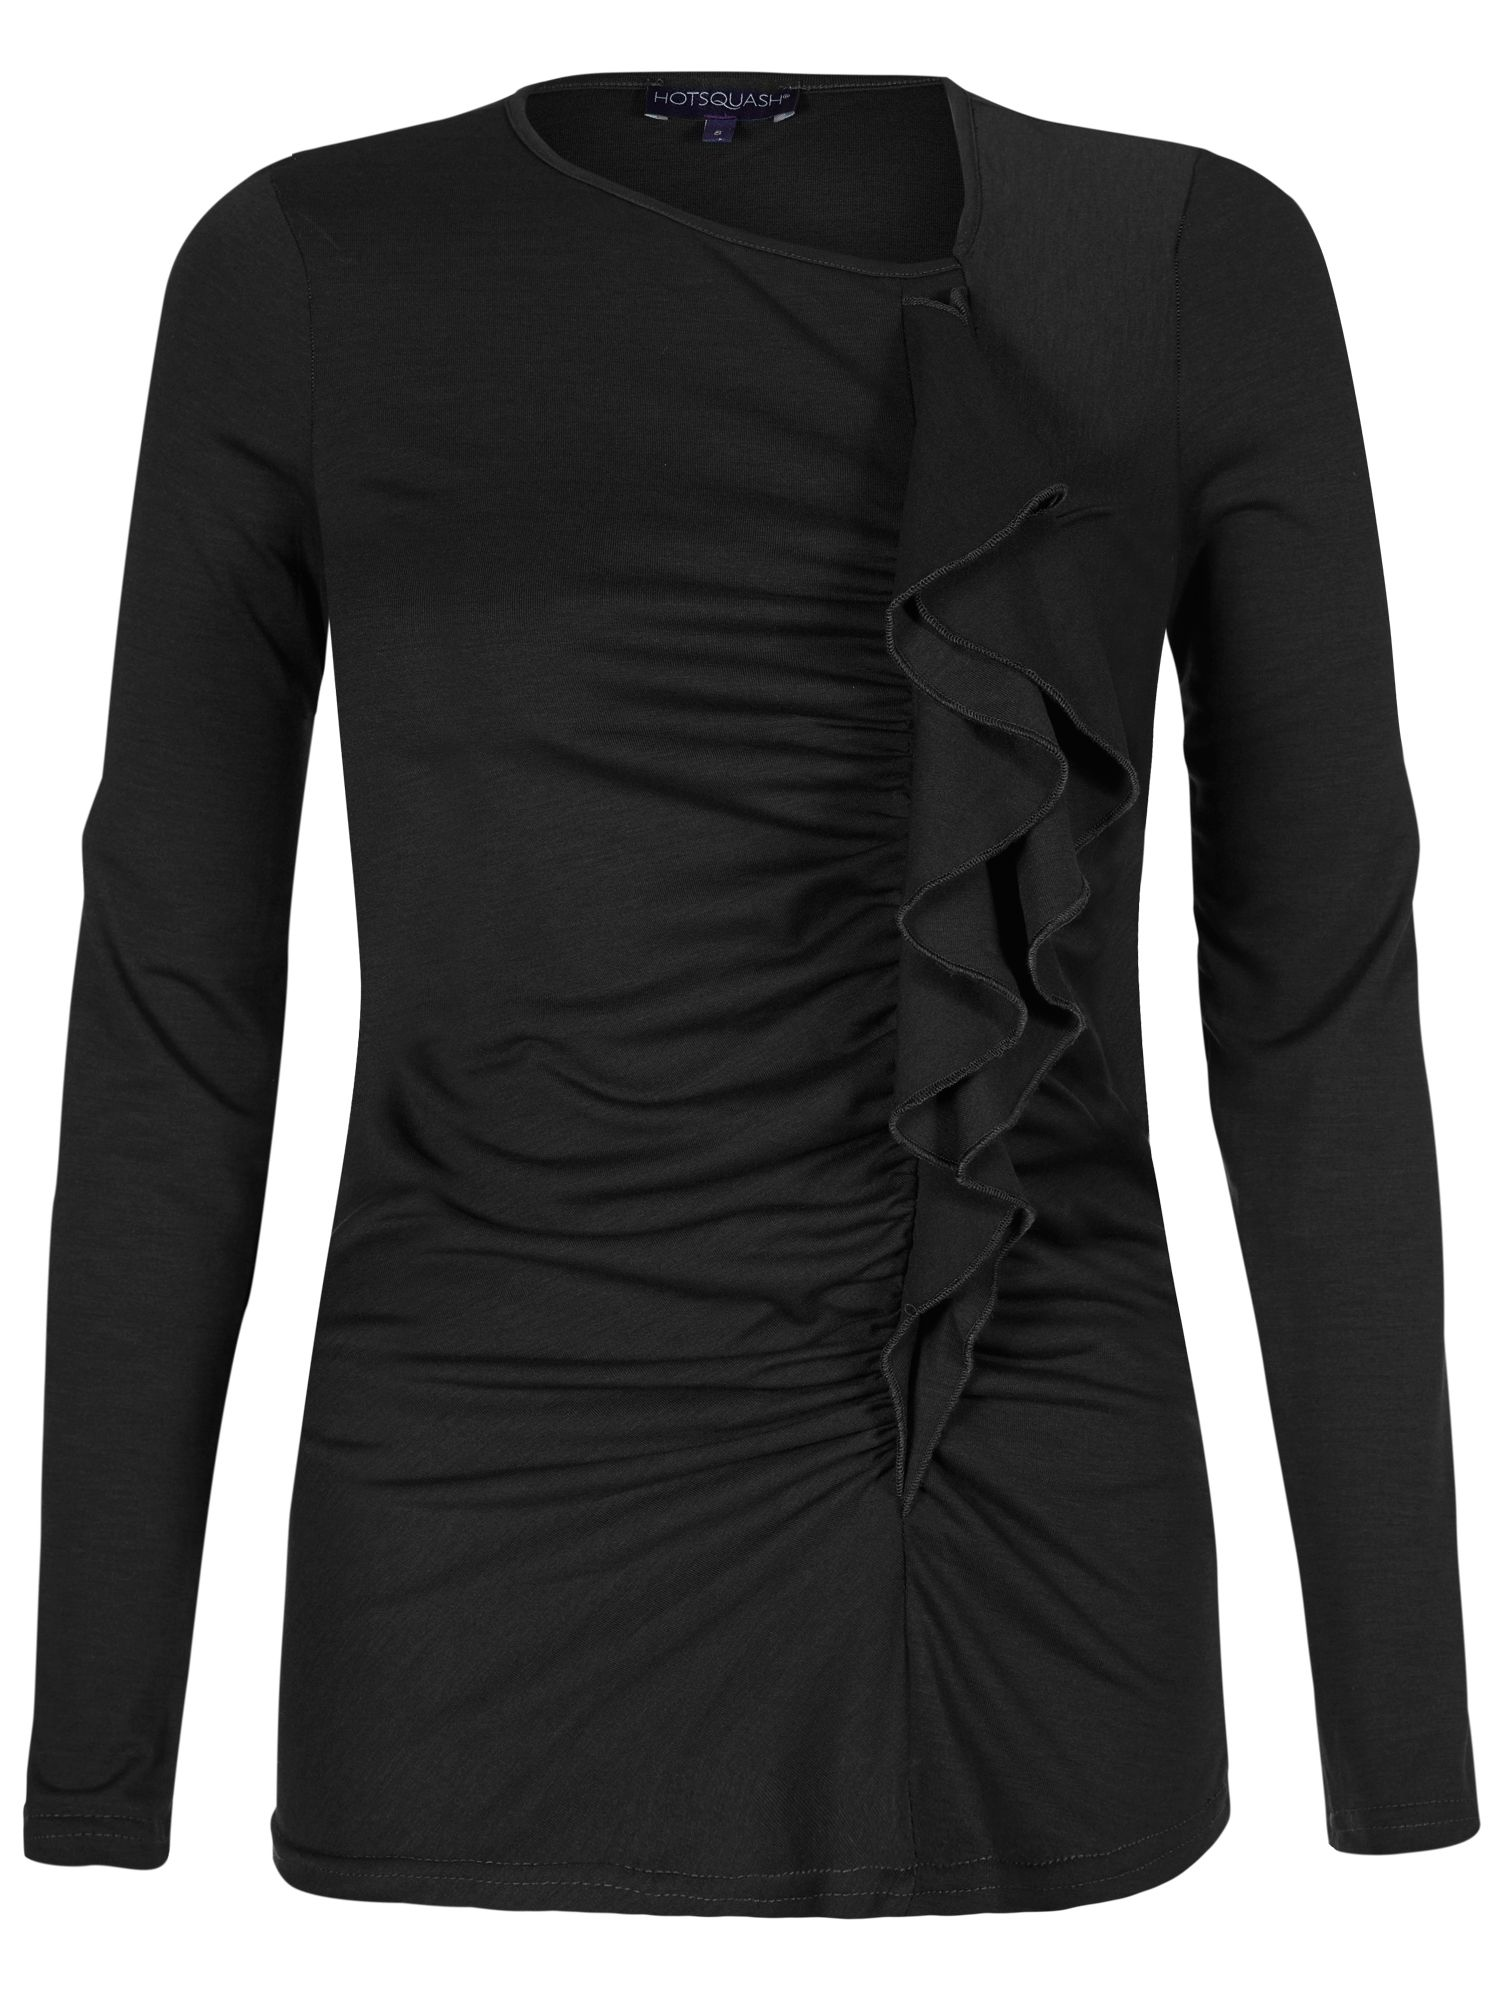 HotSquash ThinHeat top with frill detail, Black